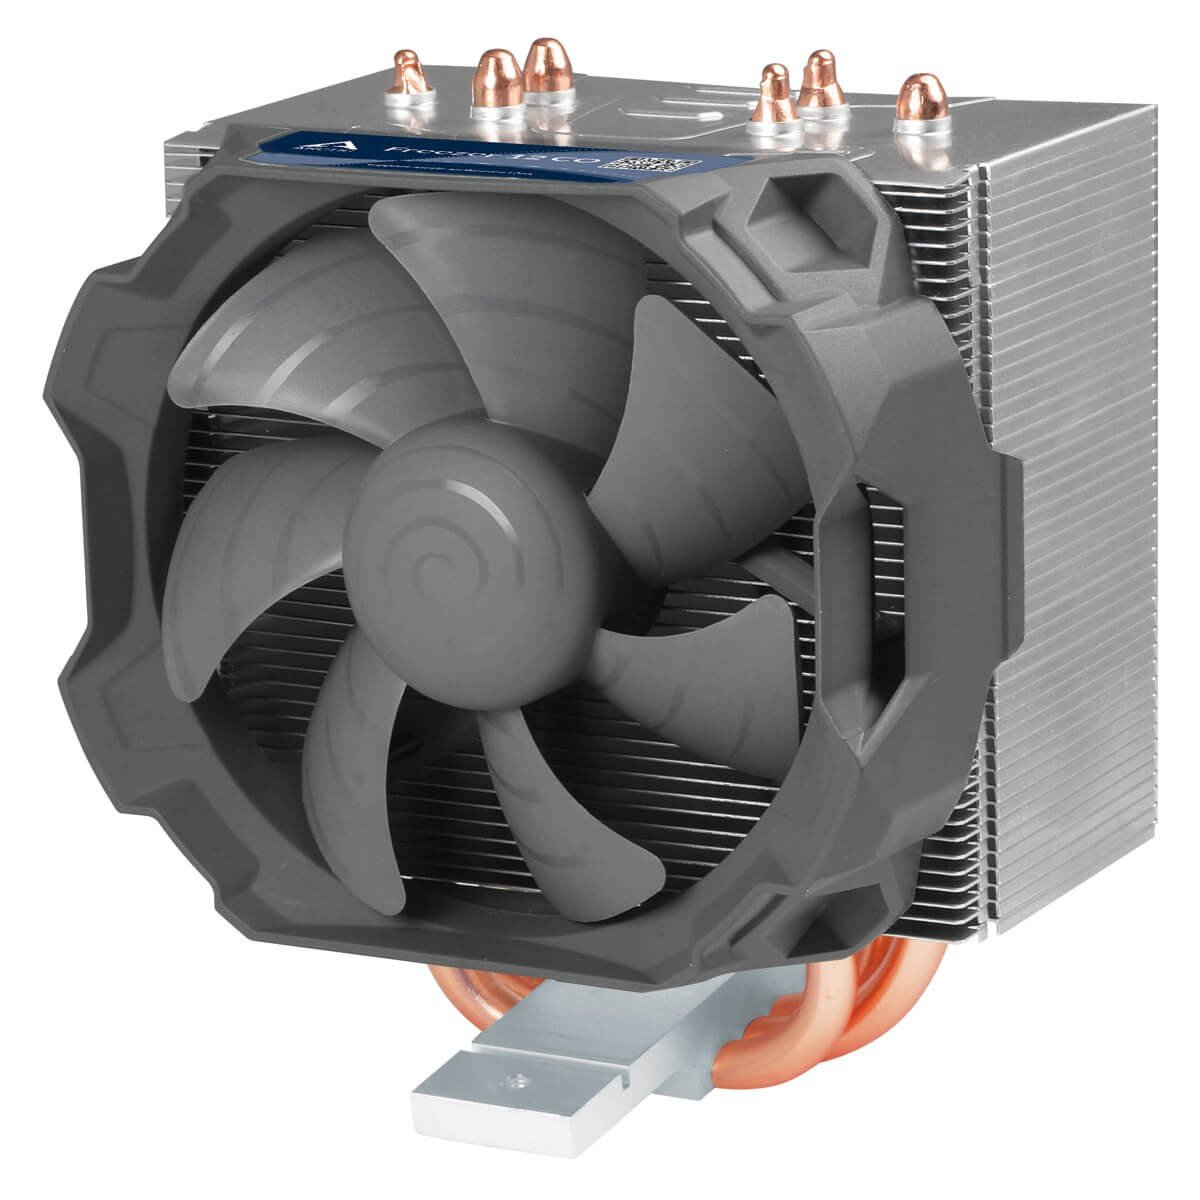 Arctic Freezer 12 CO - Compact Semi Passive Tower CPU Cooler for Continous Operation | 92 mm PWM Fan | for AMD AM4 and Intel 115X CPU |Up to 130 W TDP